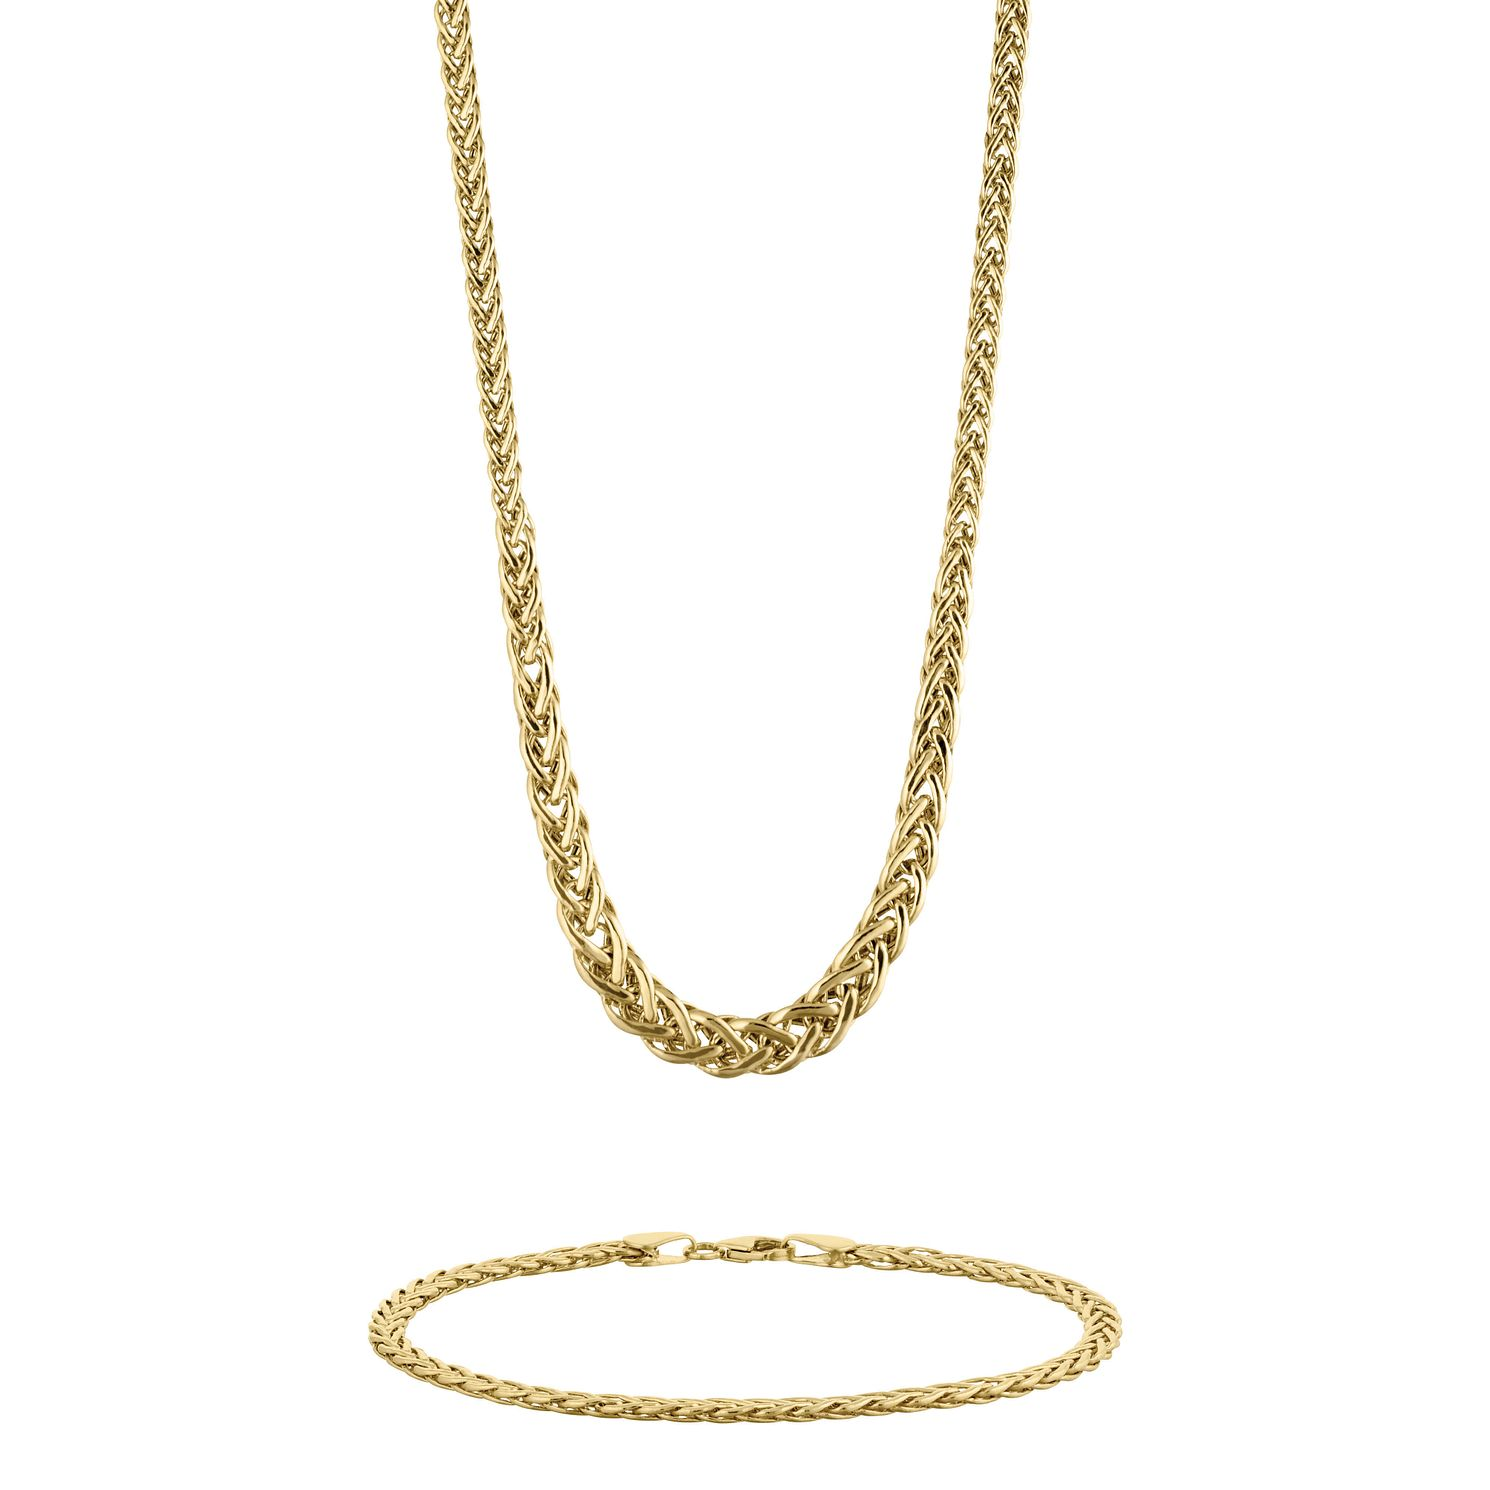 9ct Yellow Gold Chain Necklace & Bracelet Set - Product number 9663290